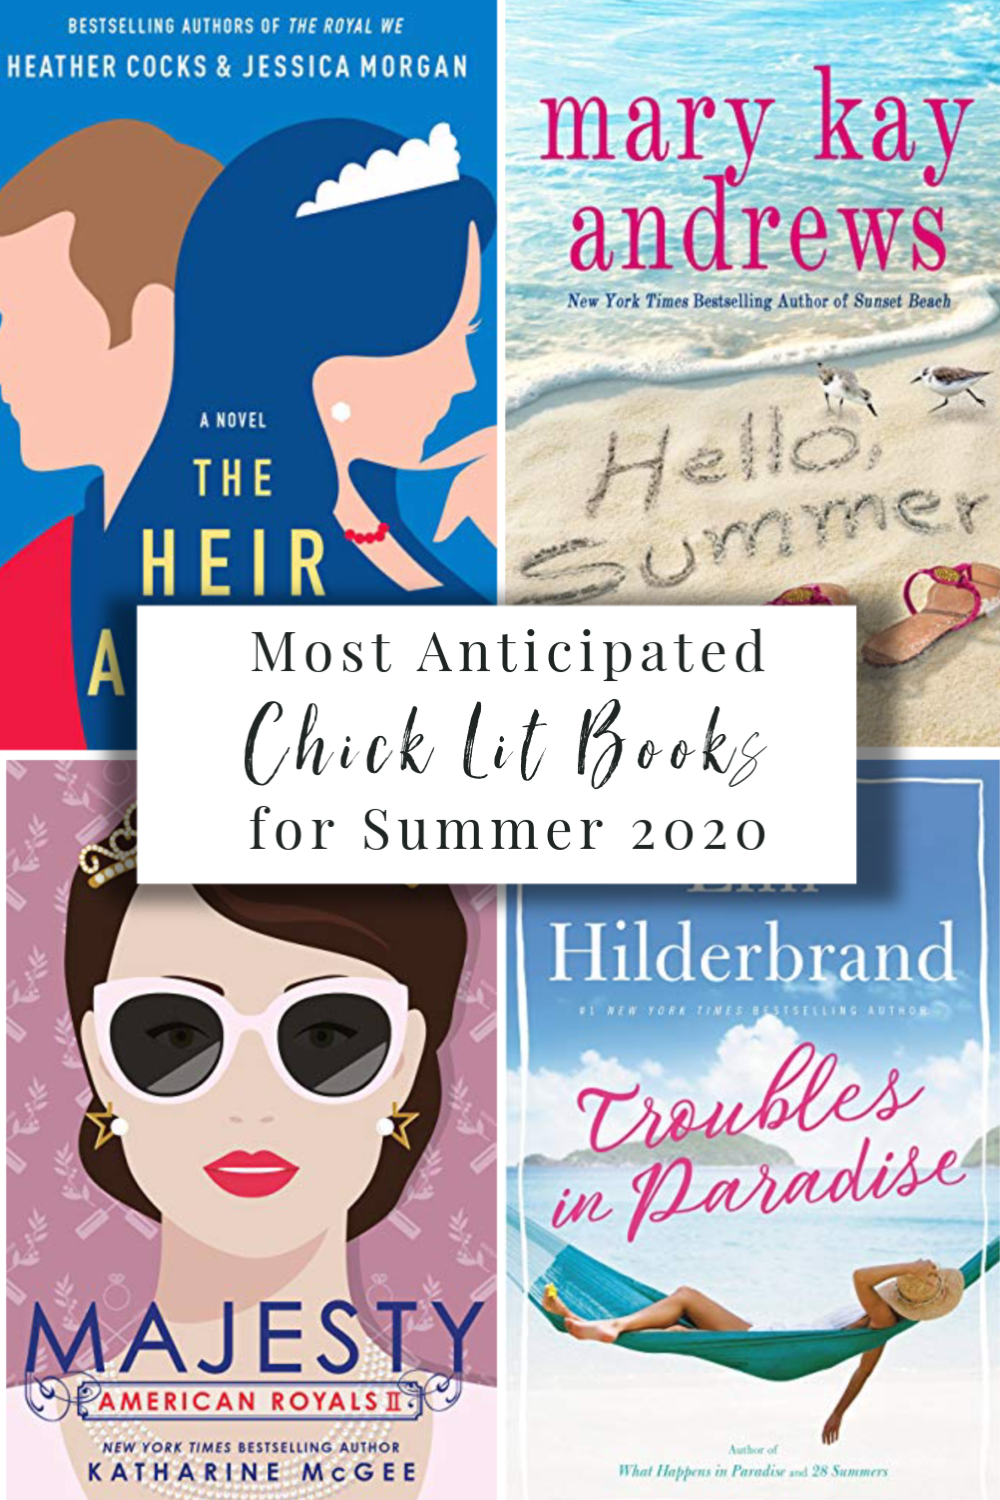 Most Anticipated Chick Lit Books for Summer 2020